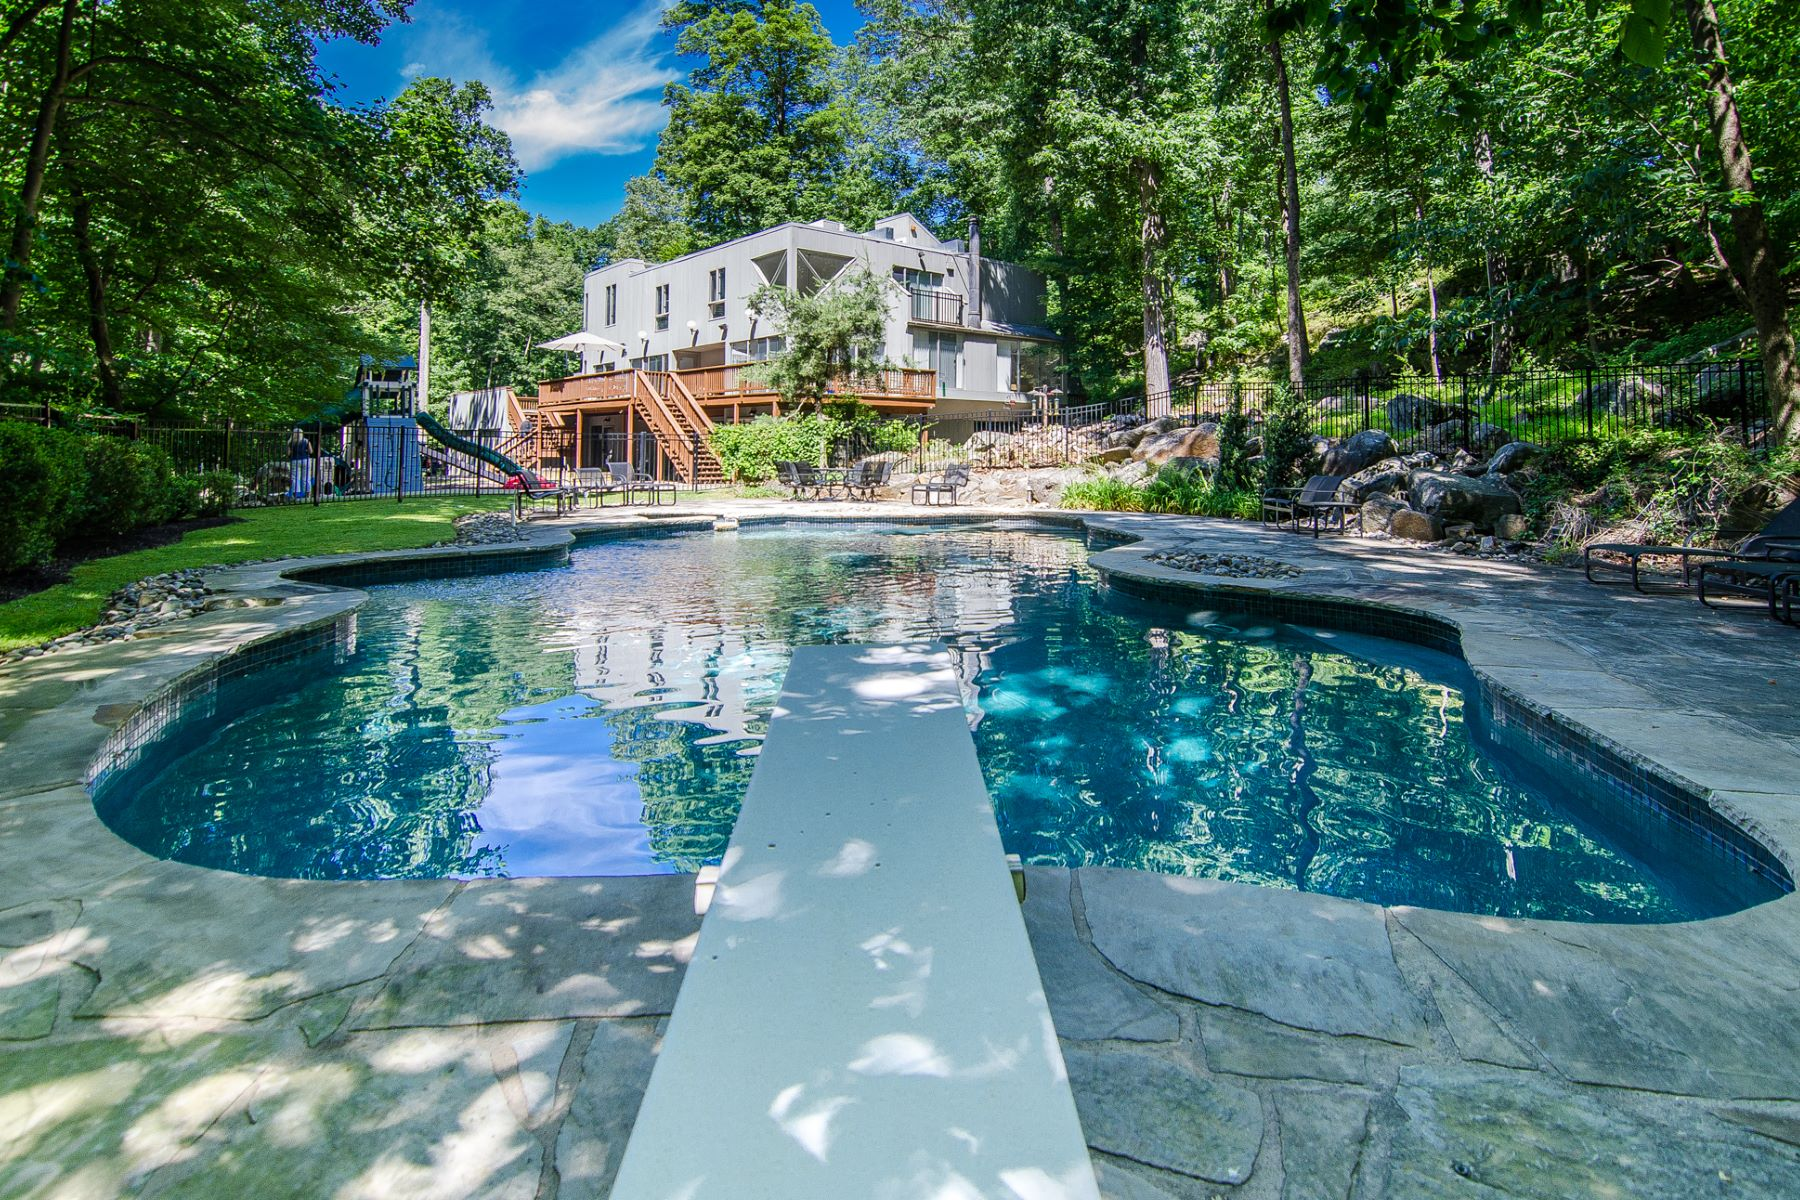 Property for Sale at Dramatic Design In A Serene Setting 945 Great Road, Princeton, New Jersey 08540 United States